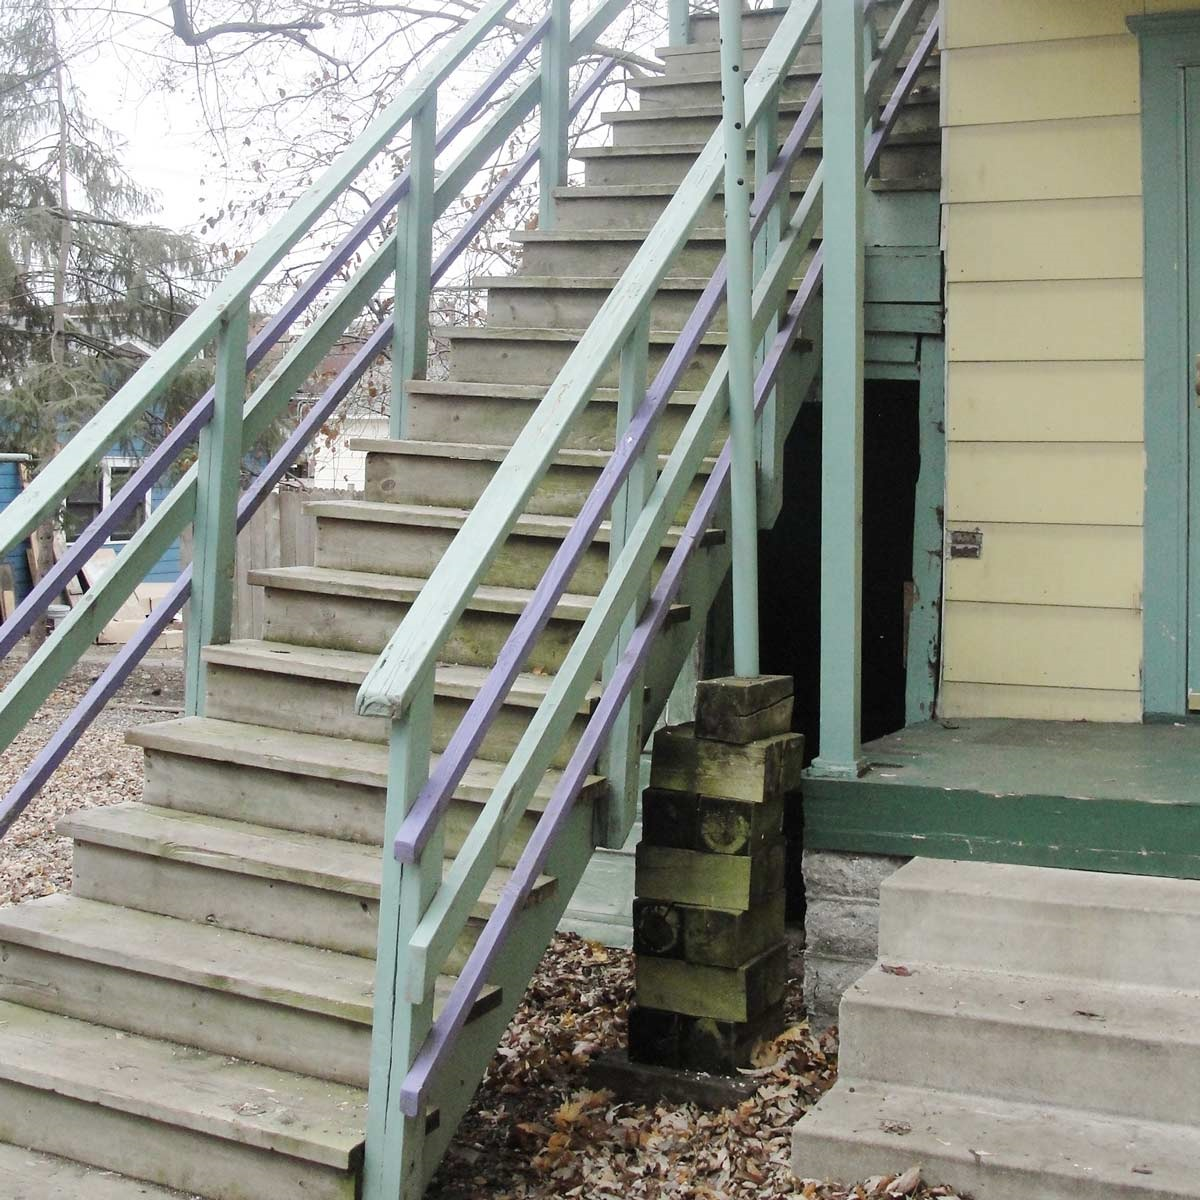 Home Inspections in Panama City FL